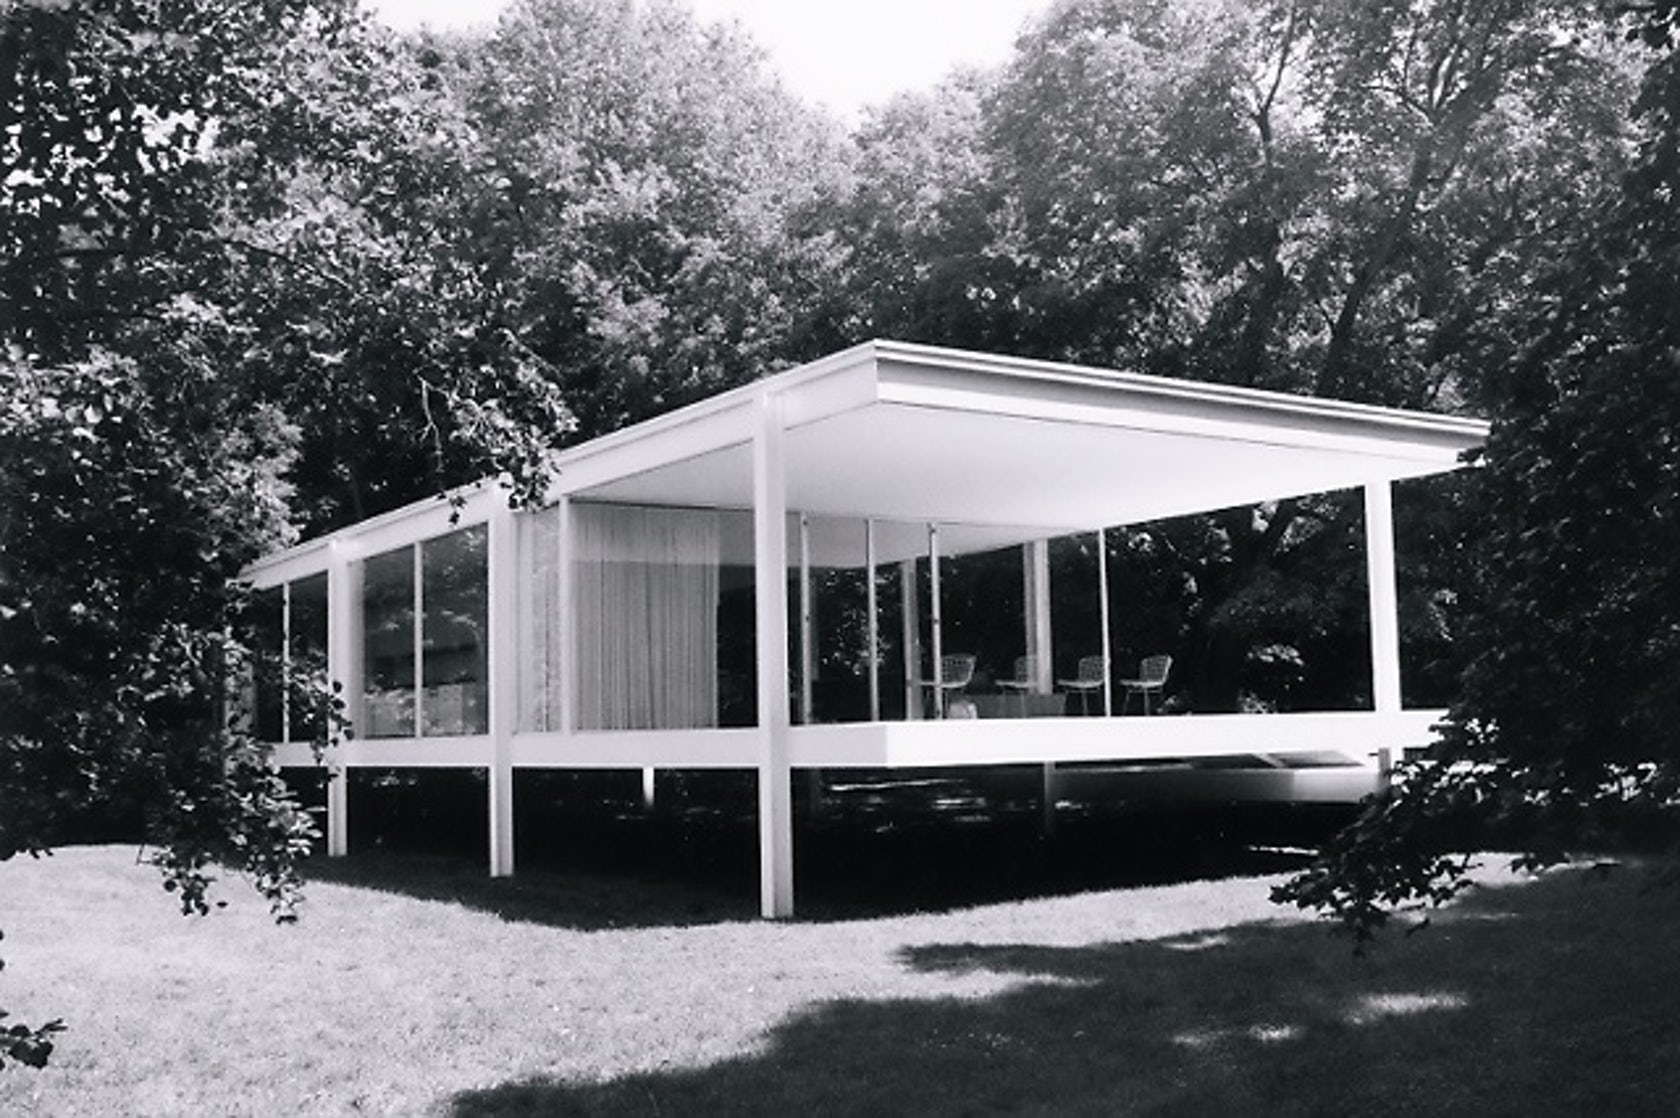 mies van der rohe 39 s farnsworth house a book by paul clemence architizer. Black Bedroom Furniture Sets. Home Design Ideas